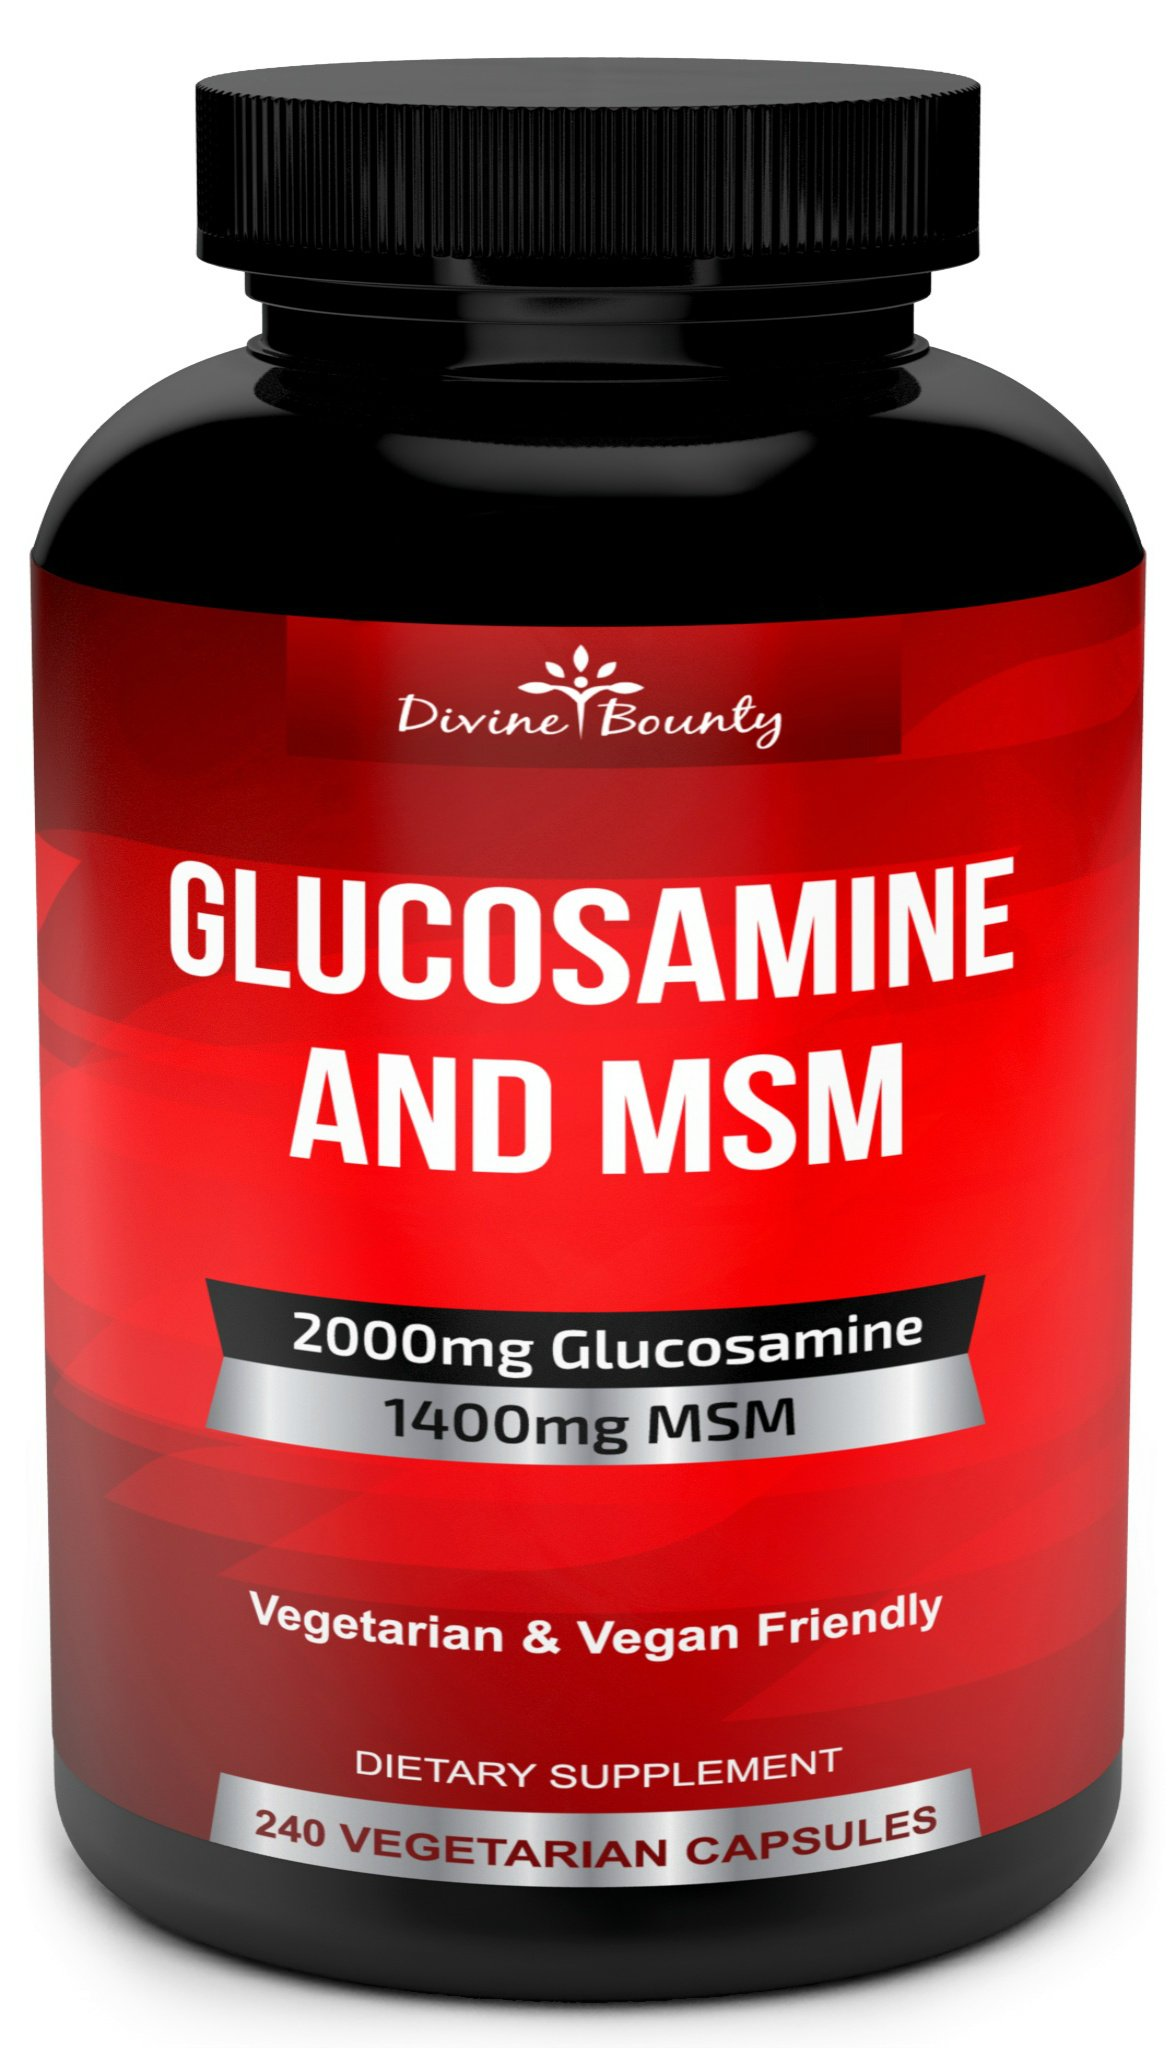 Glucosamine Sulfate Supplement (2000mg per Serving) with MSM - 240 Small Vegetarian Capsules - No Shellfish, GMO's or Harmful Additives by Divine Bounty